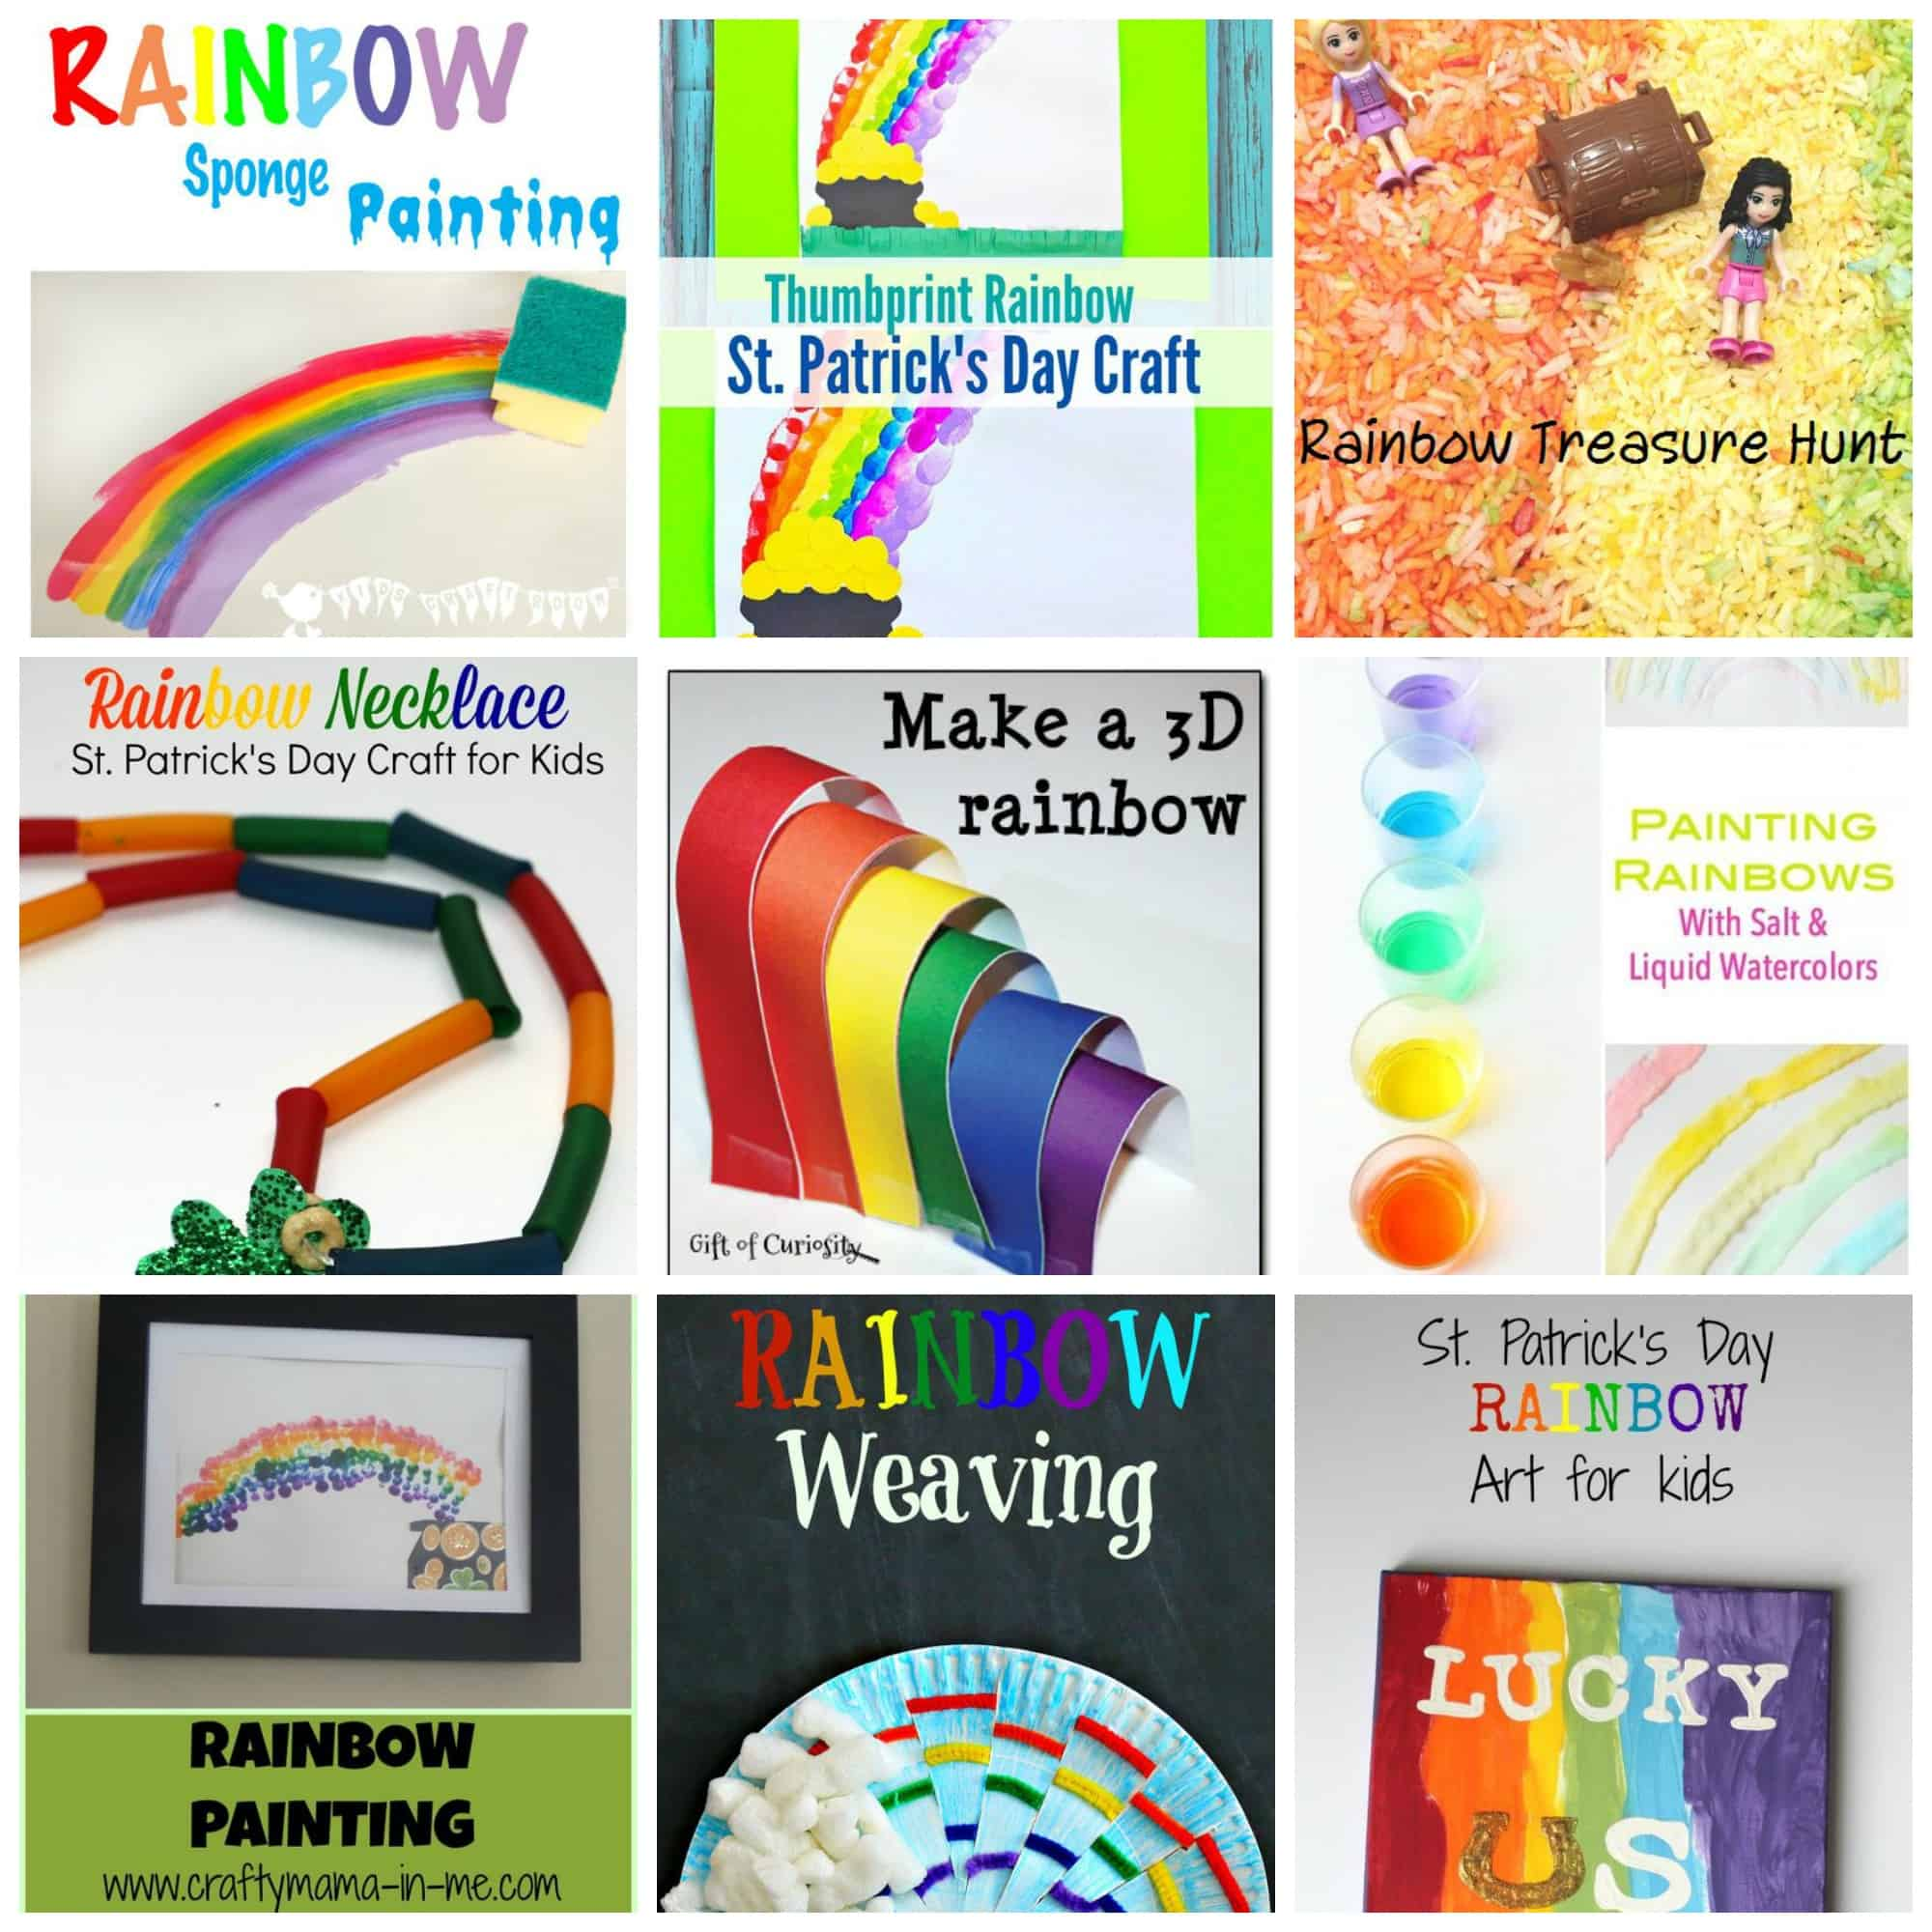 This collection of rainbow crafts and activities is sure to keep your kids busy and learning through fun and play! Perfect for the Spring!